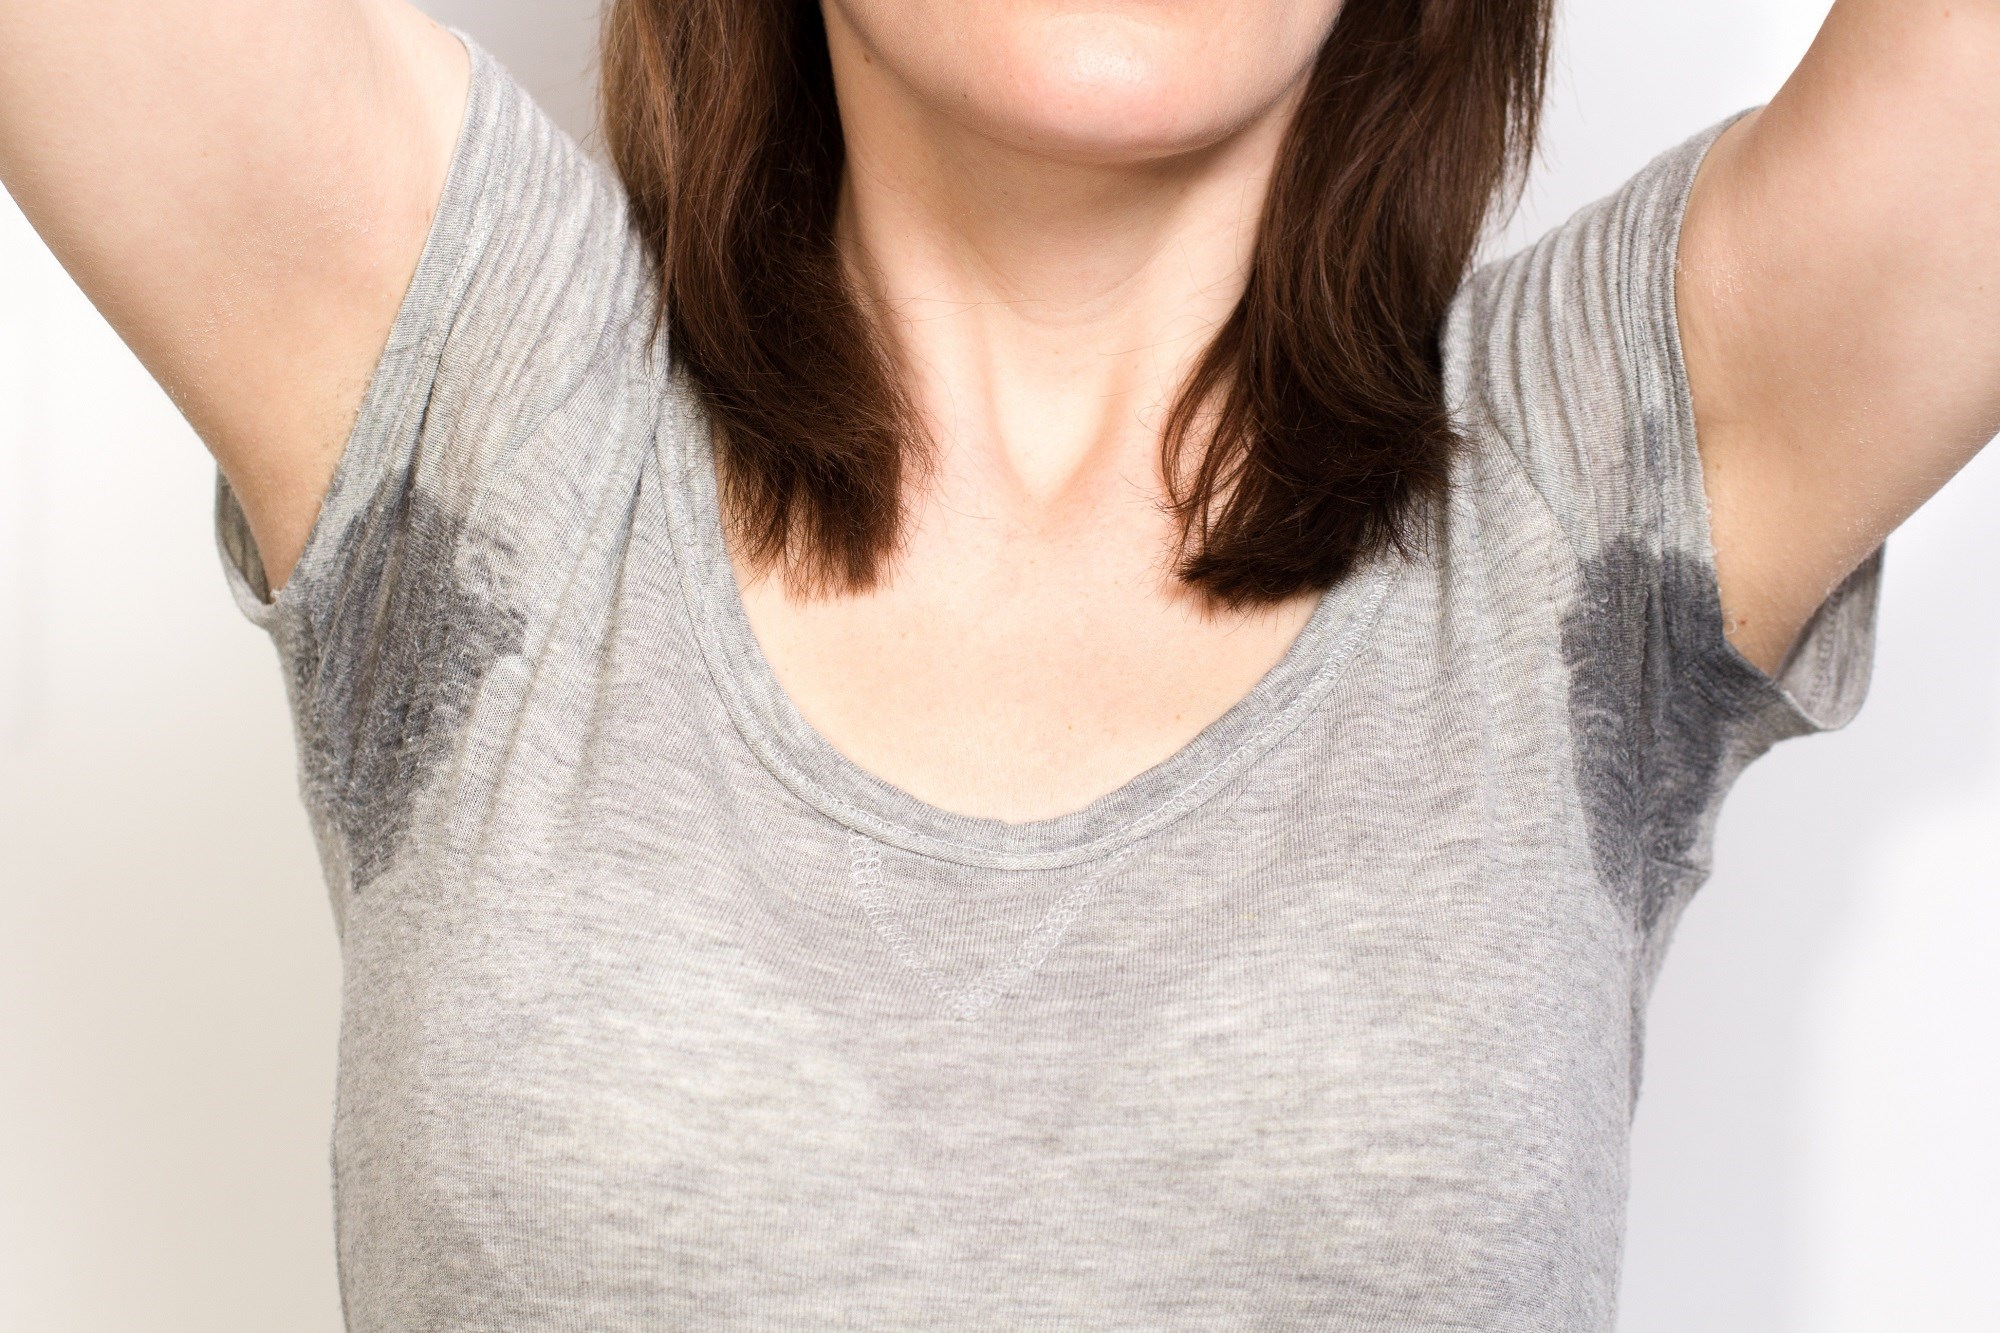 Newly approved treatment options for axillary hyperhidrosis give more opportunities for clinicians to provide personalized treatment for patients.